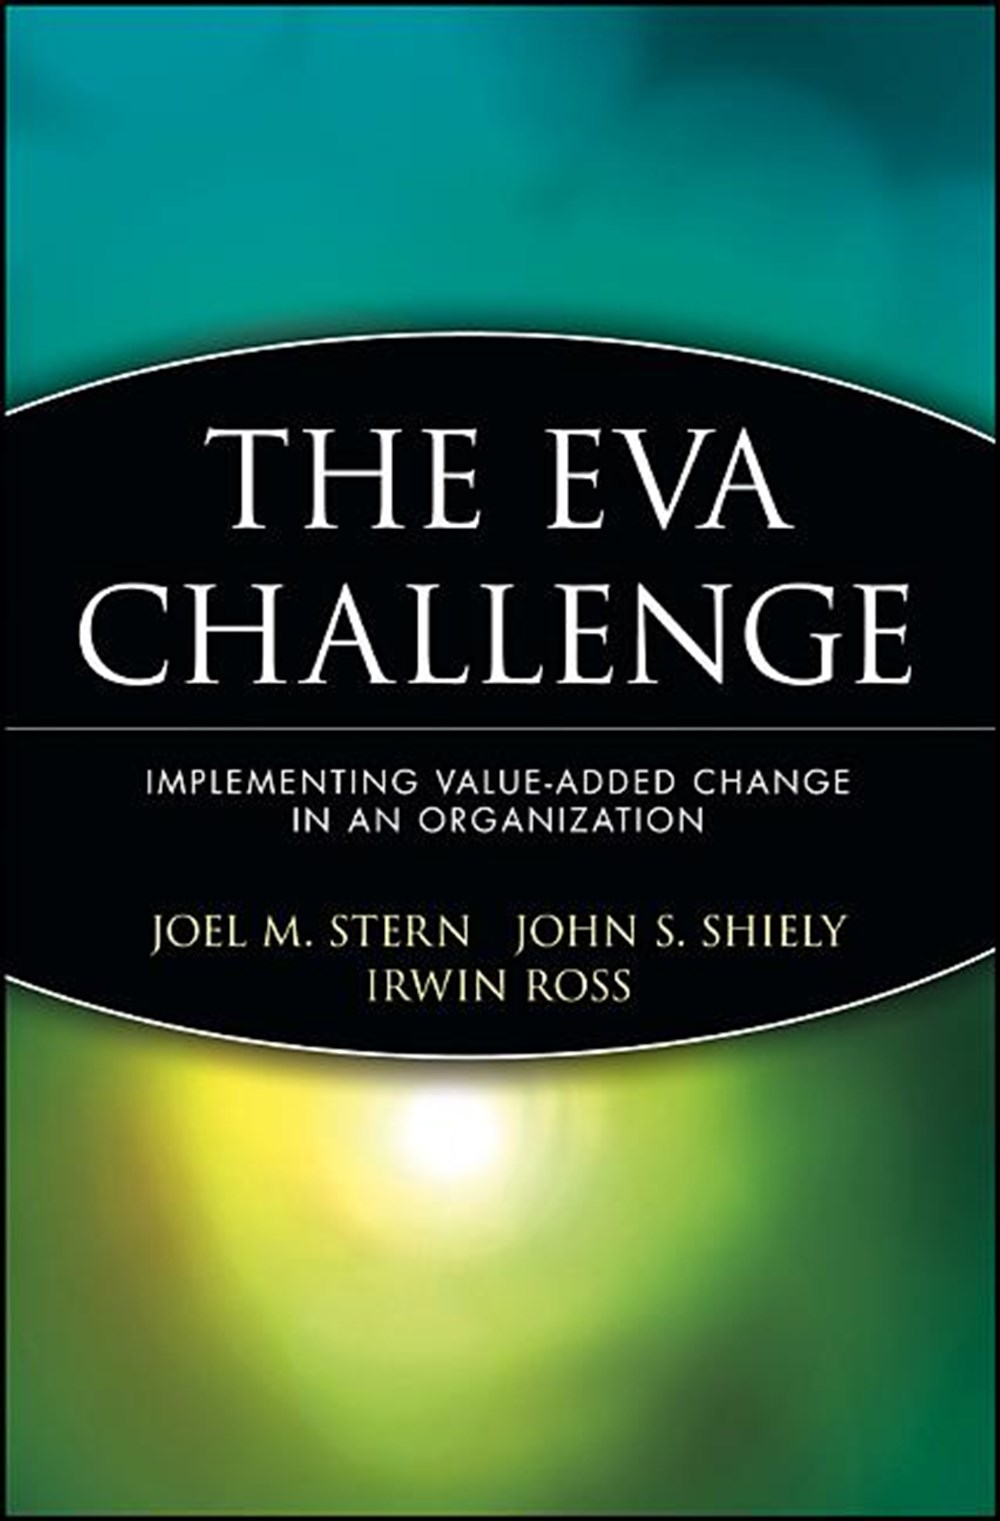 Eva Challenge Implementing Value-Added Change in an Organization